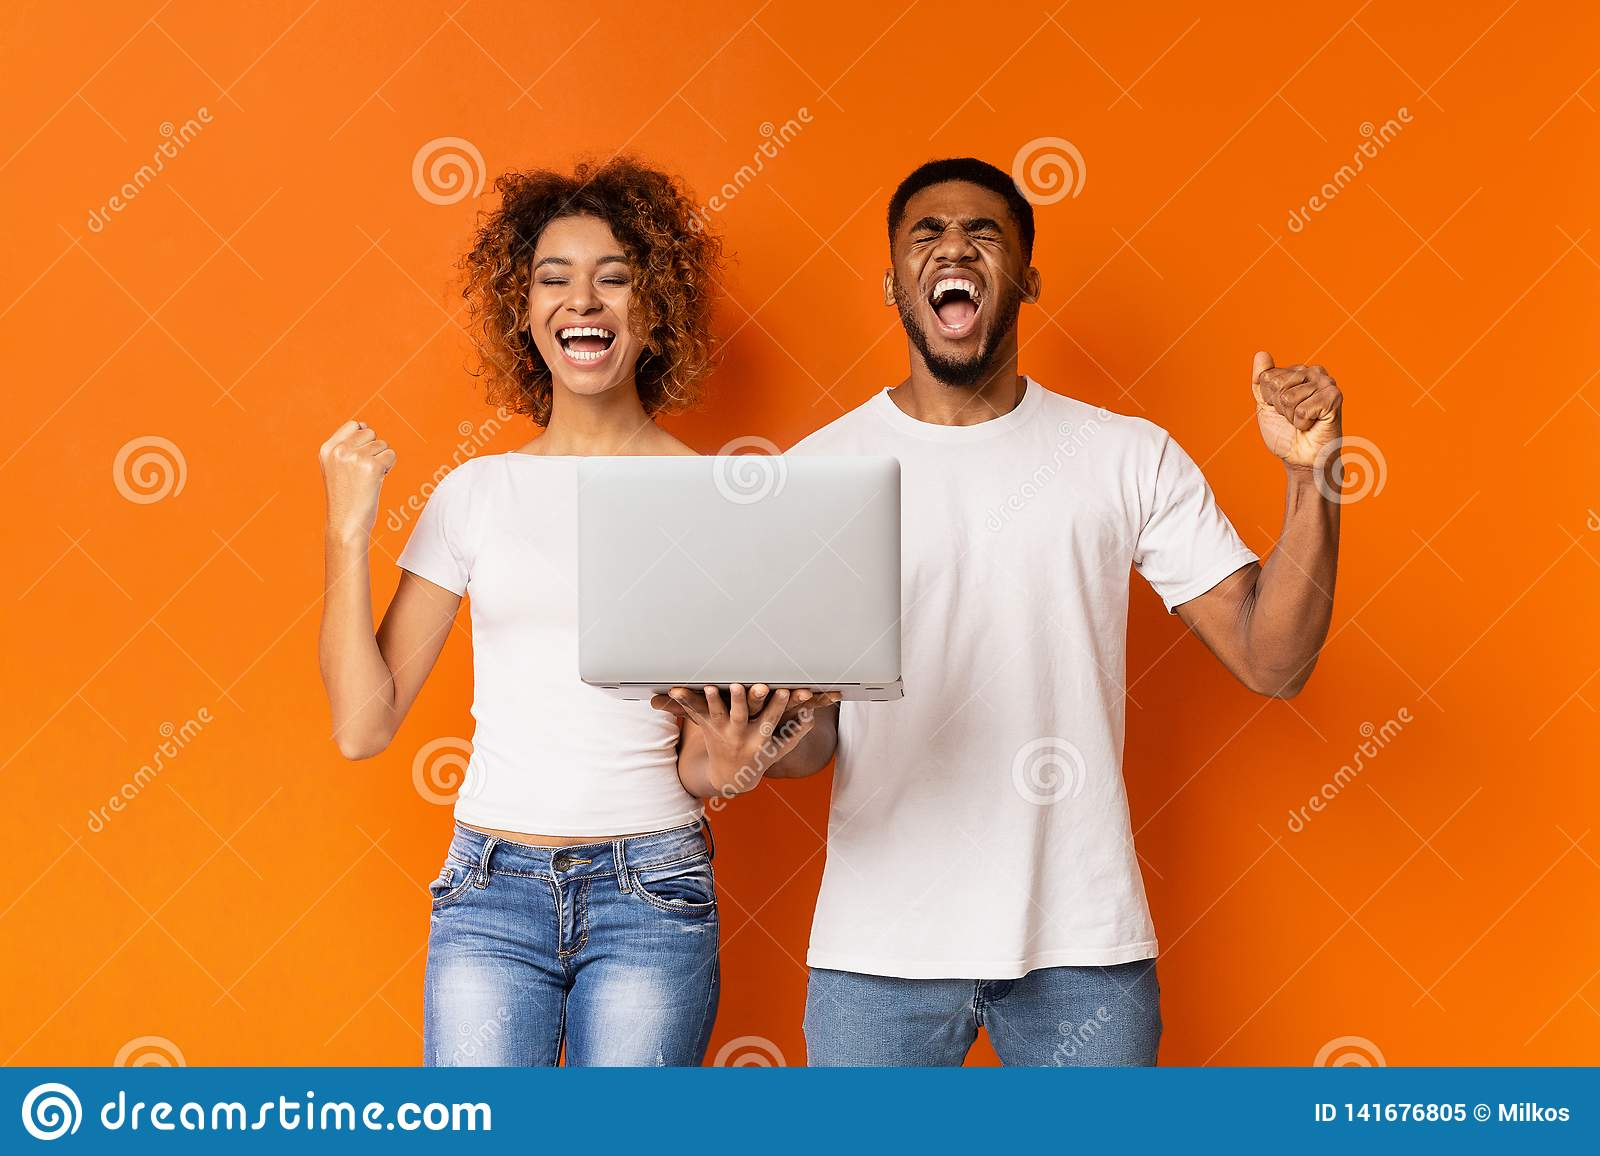 Excited black couple celebrating win with laptop